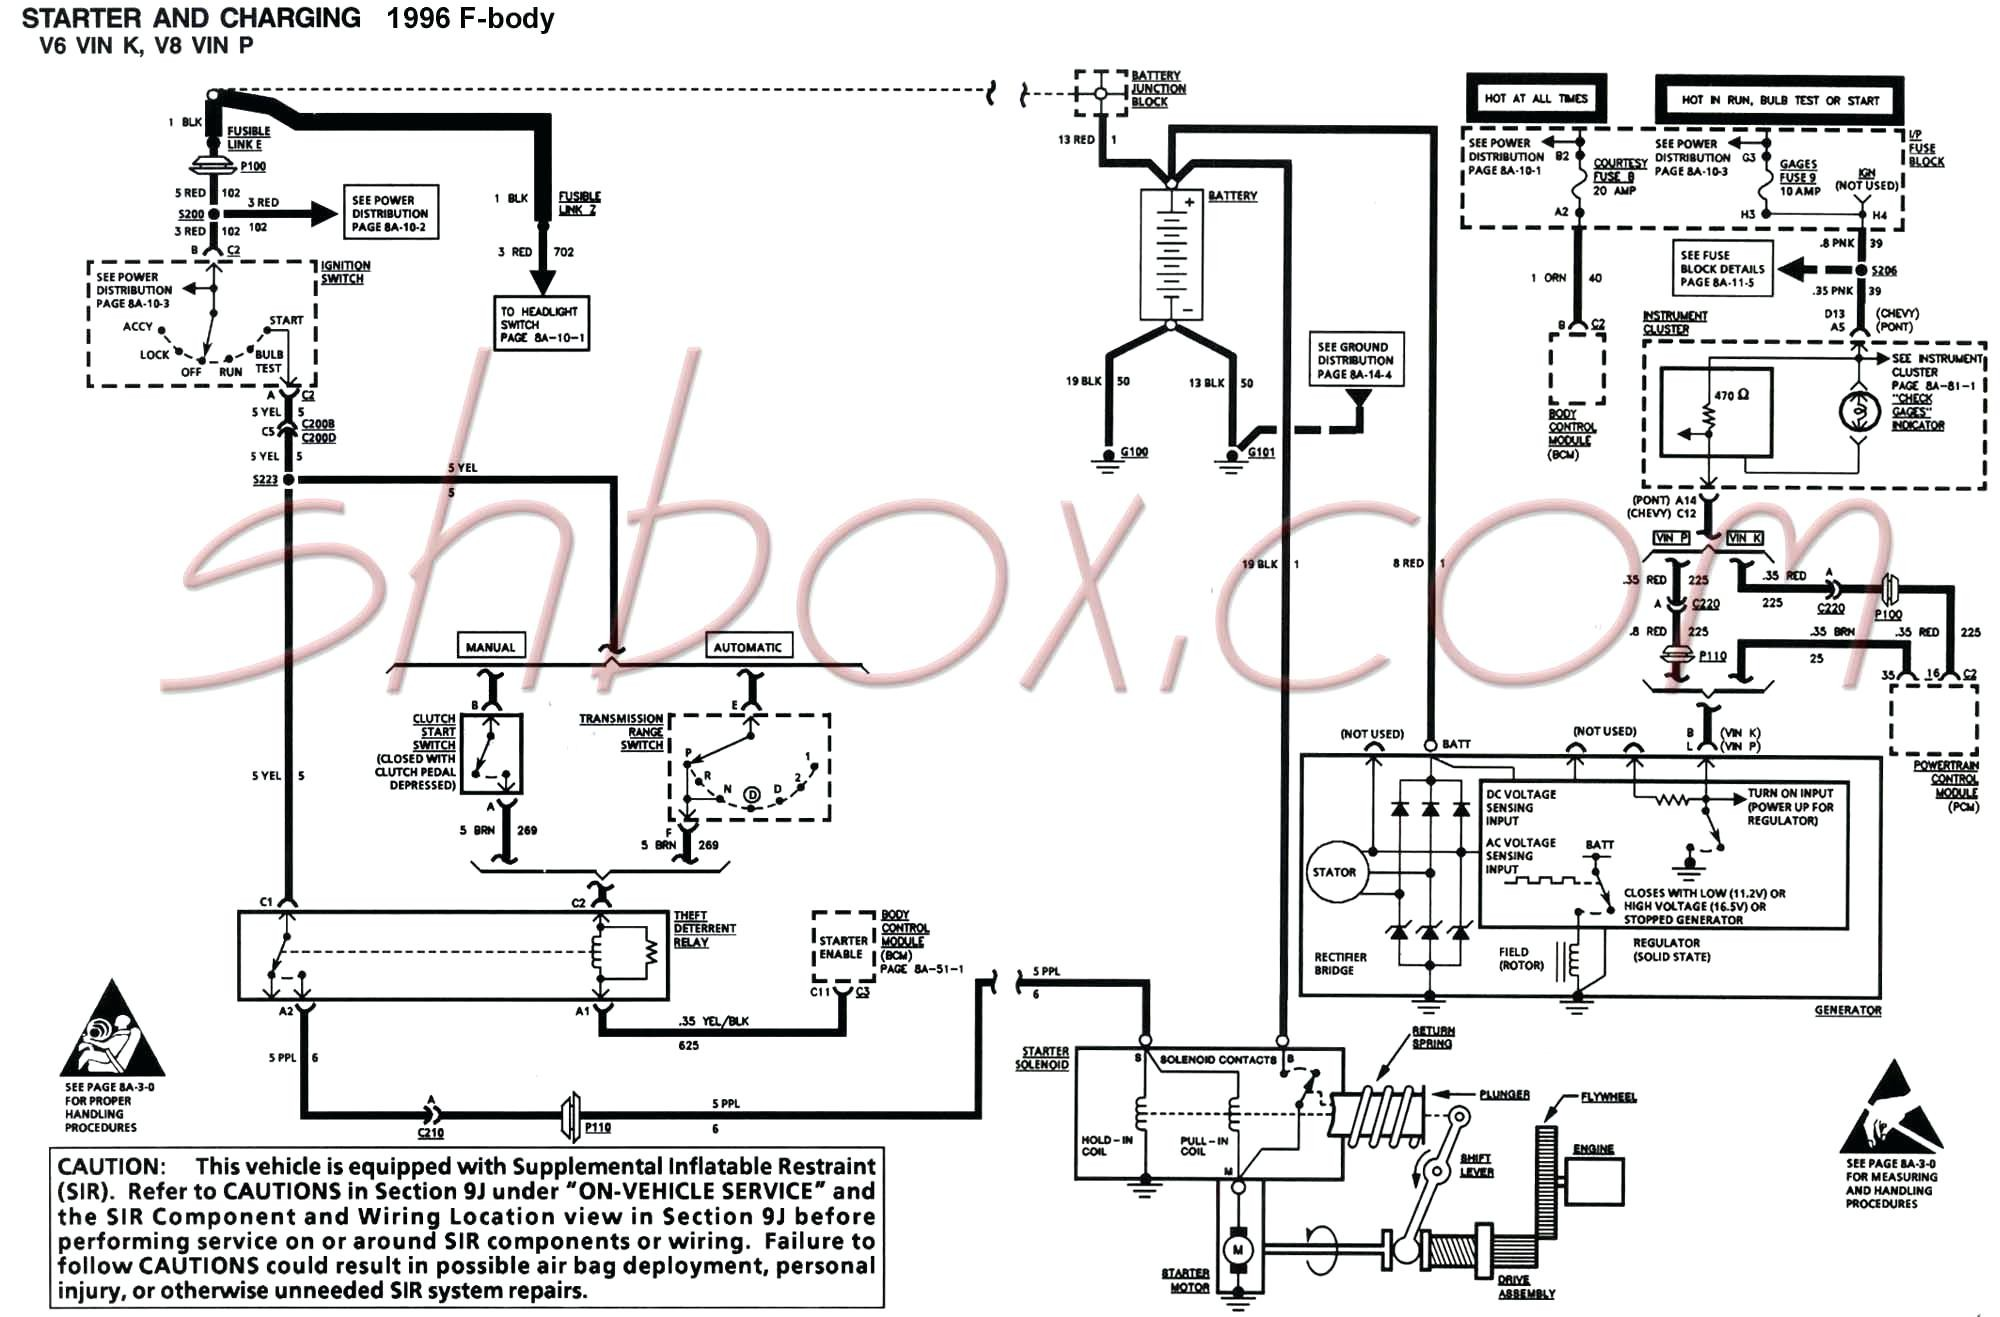 Subaru Legacy Engine Diagram Addition 2000 Impreza 2 5 Rs Wiring Related Post